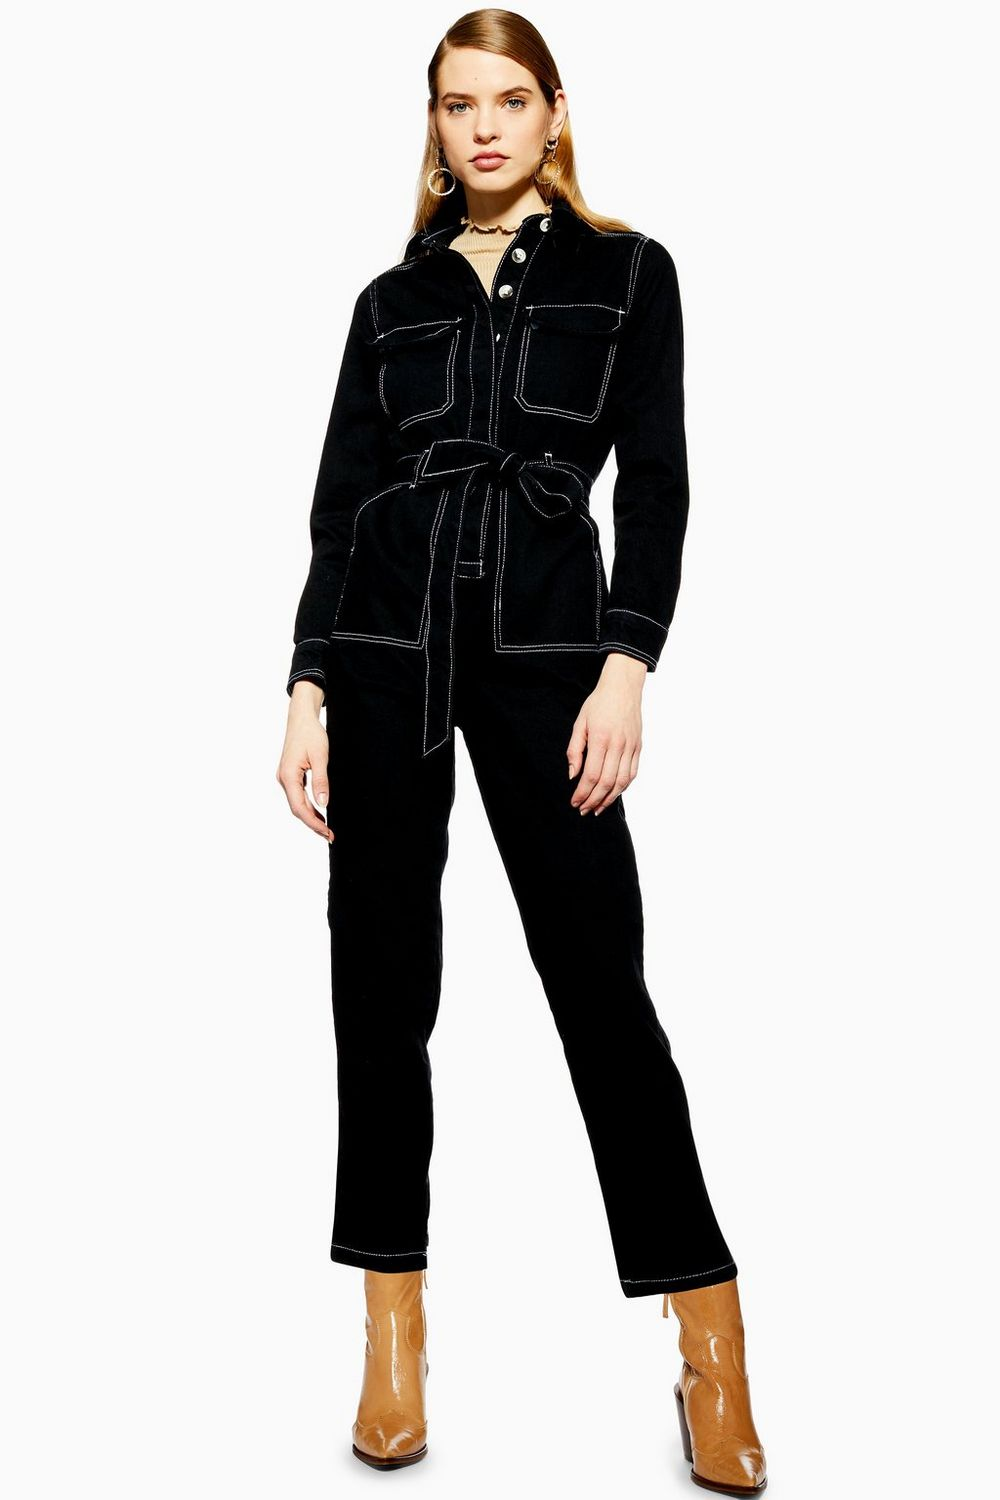 Topshop Black Denim Boiler Suit - Ticking all the trend boxes, this black denim boiler suit is a total winner and the contrast stitching is the cherry on top.£59, available at Topshop